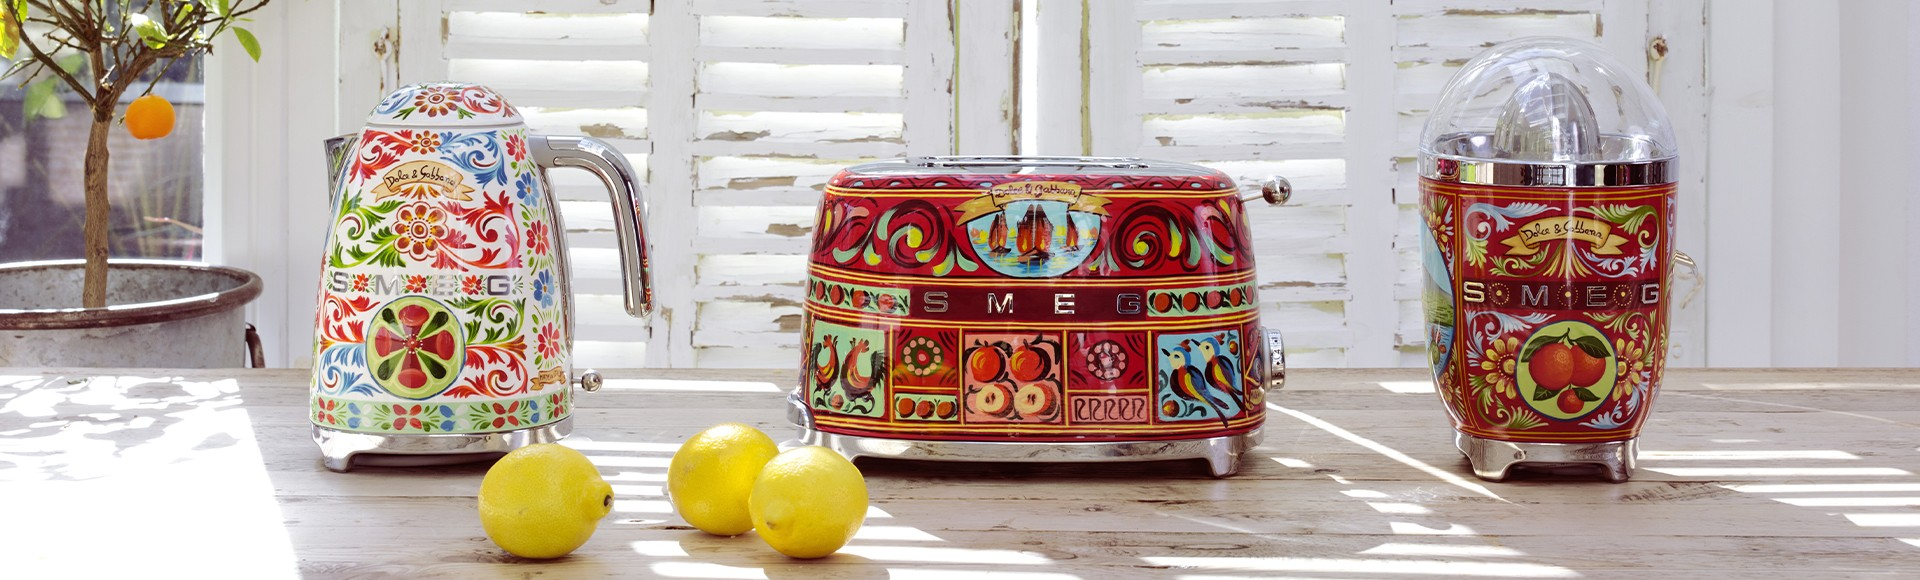 Sicily is my love collection by Smeg and Dolce&Gabbana